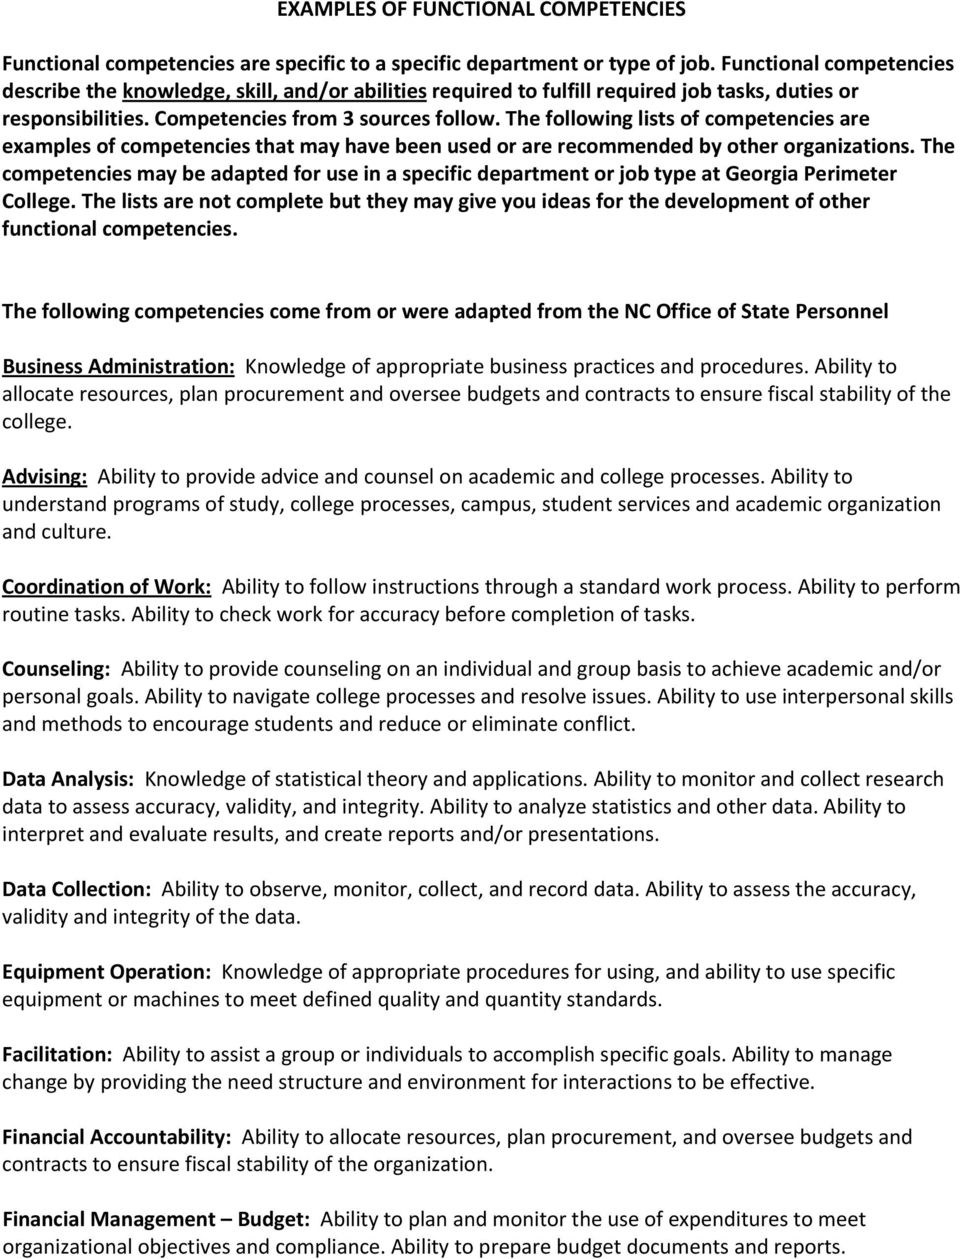 examples of functional competencies pdf